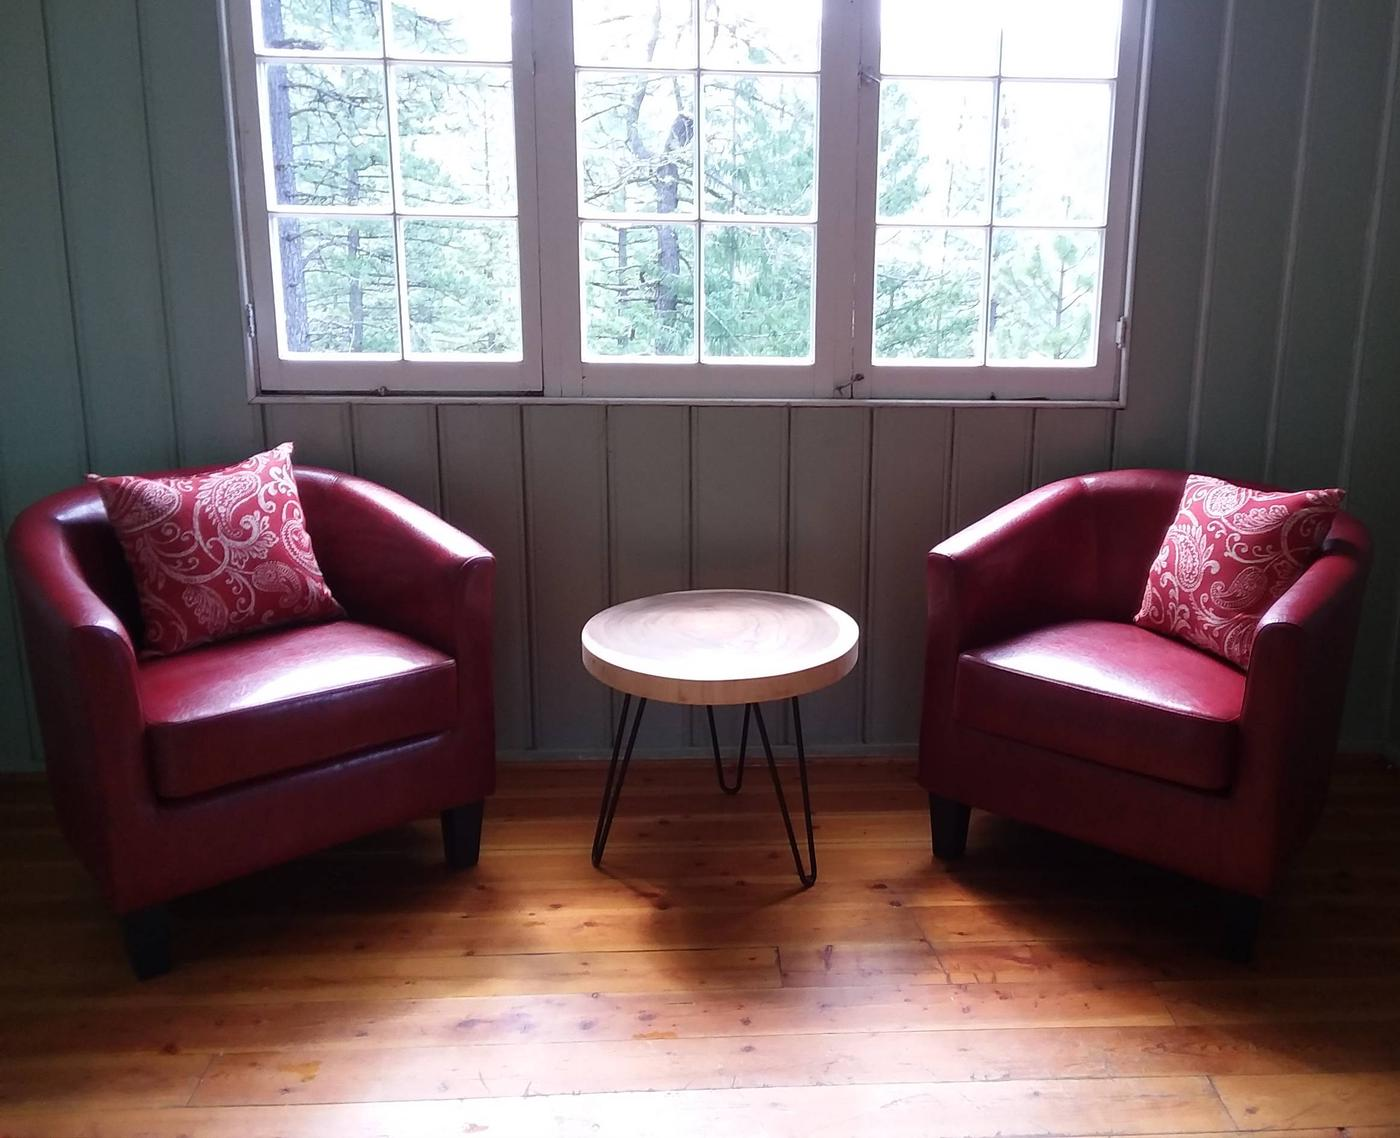 """Two red chairs and a coffee table in living room.Cozy new furniture in the living room or """"sitting"""" room."""